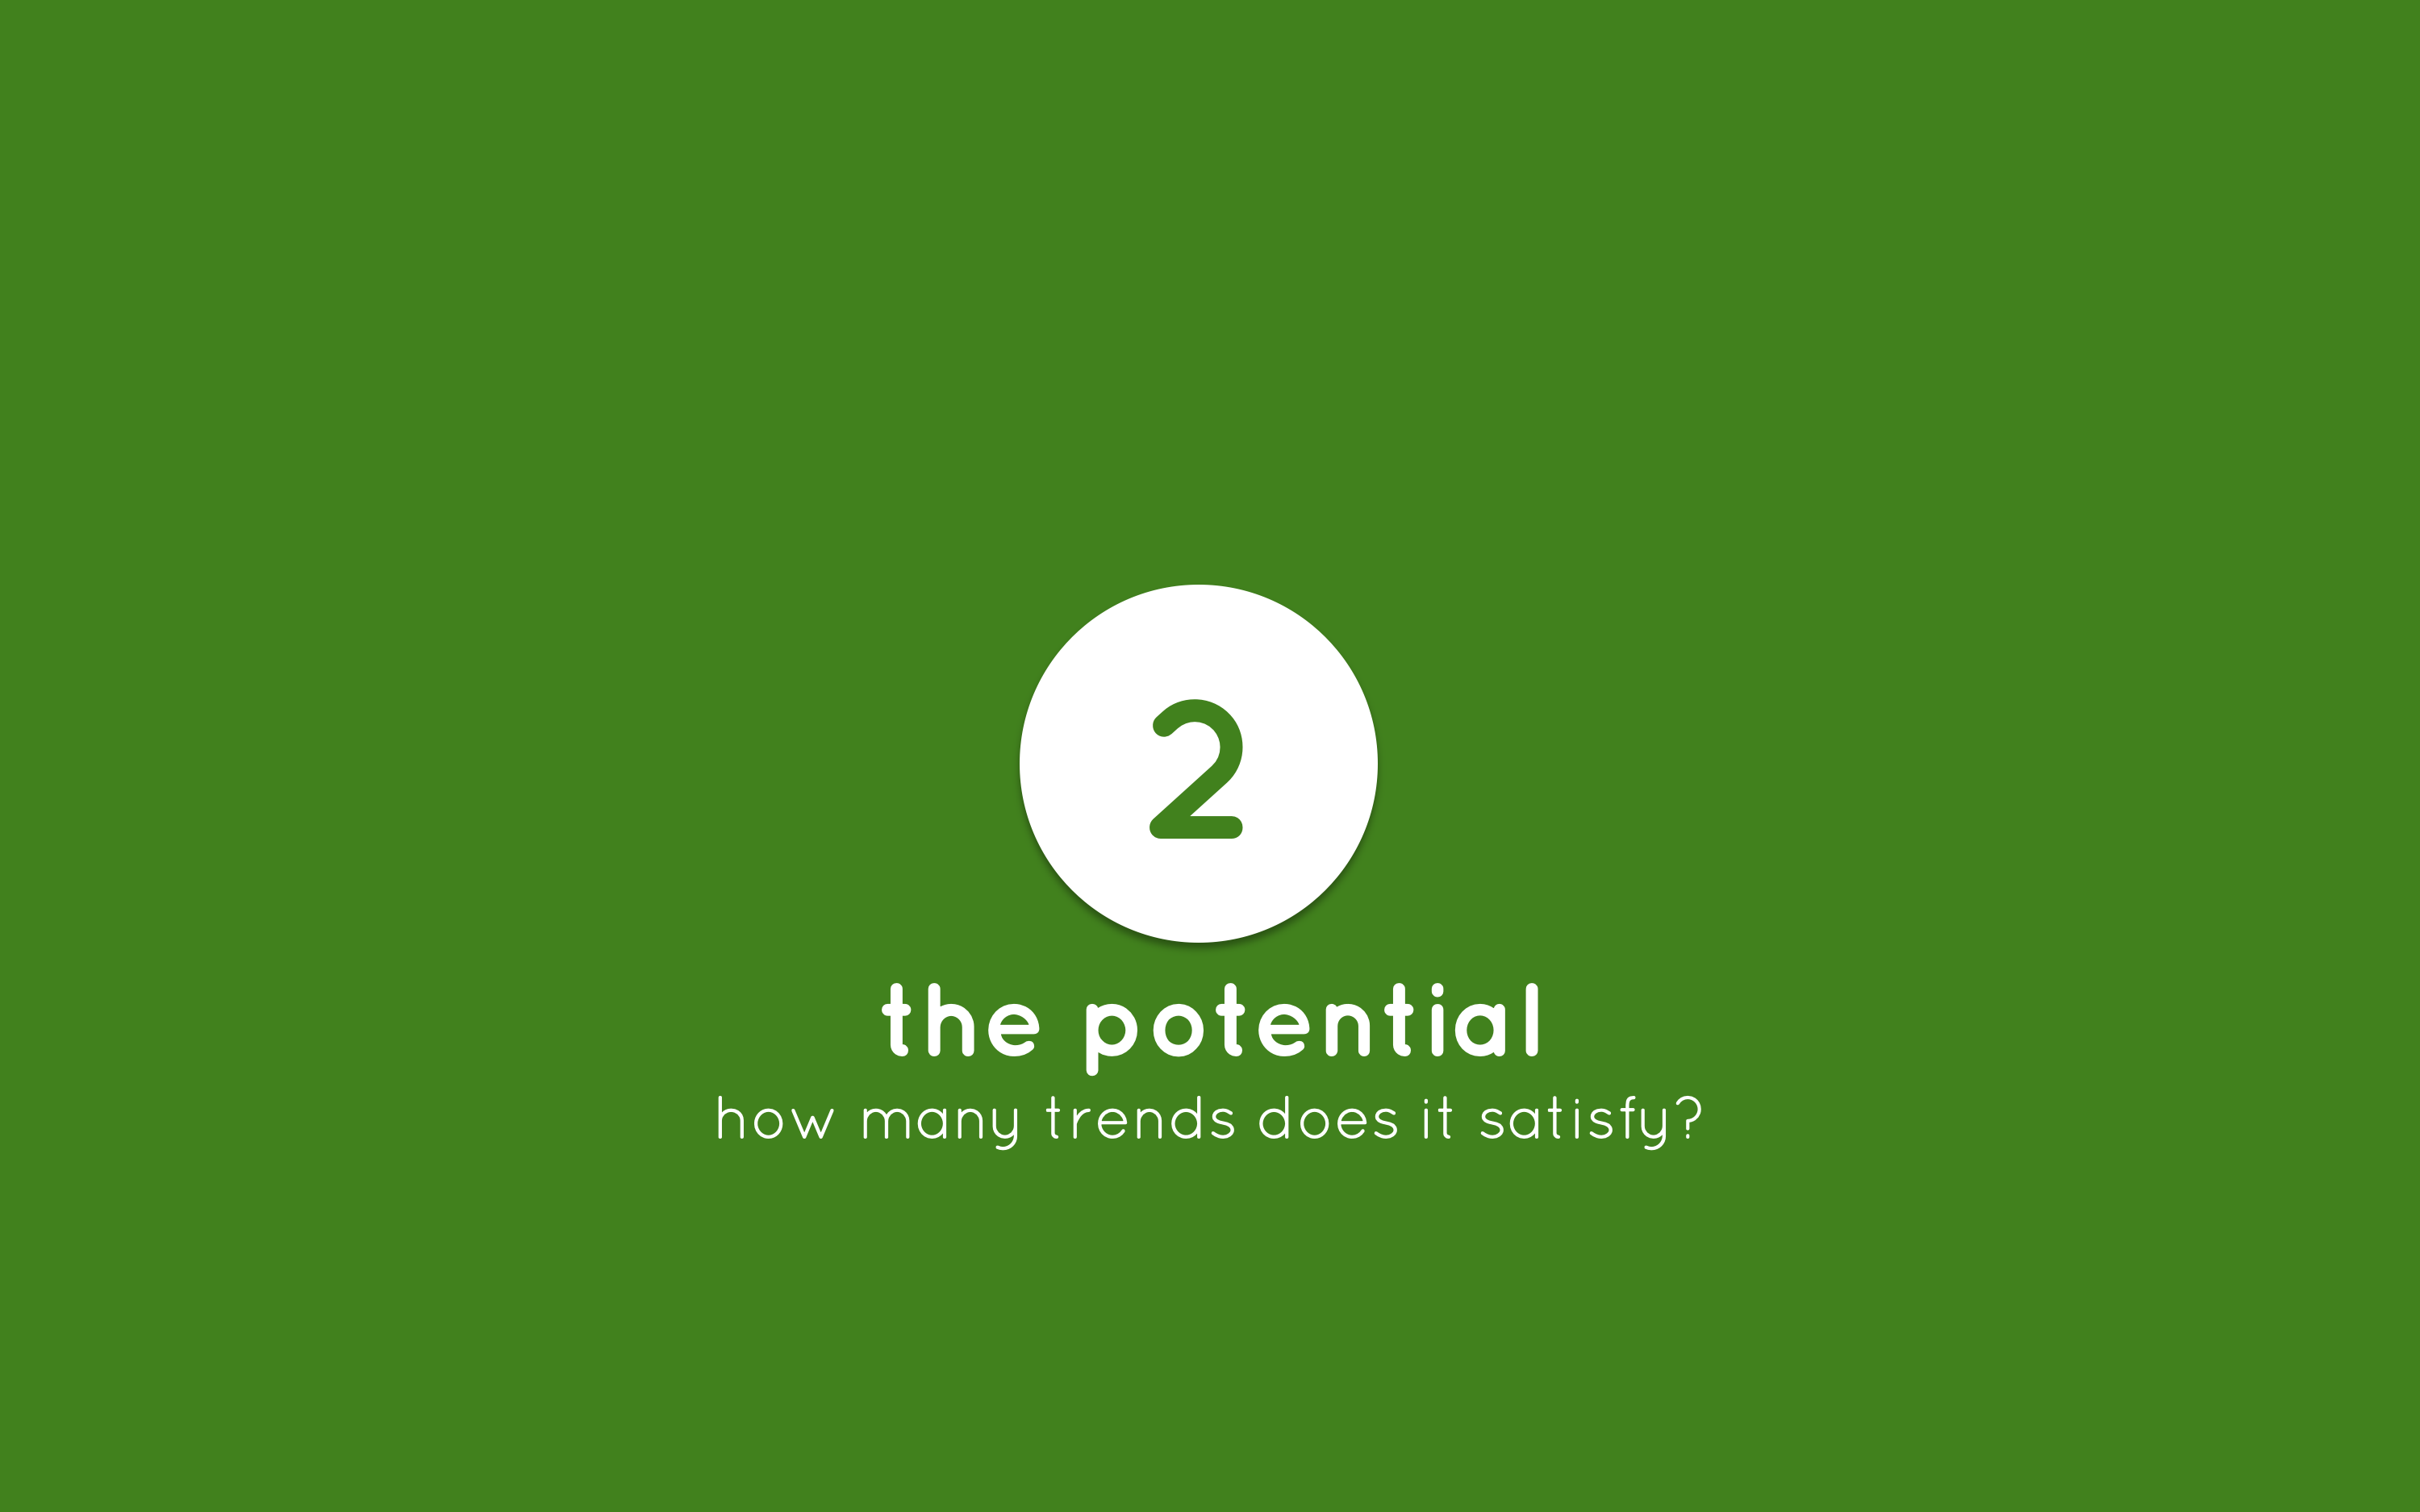 Human-Centered Entrepreneurship step 2 the potential